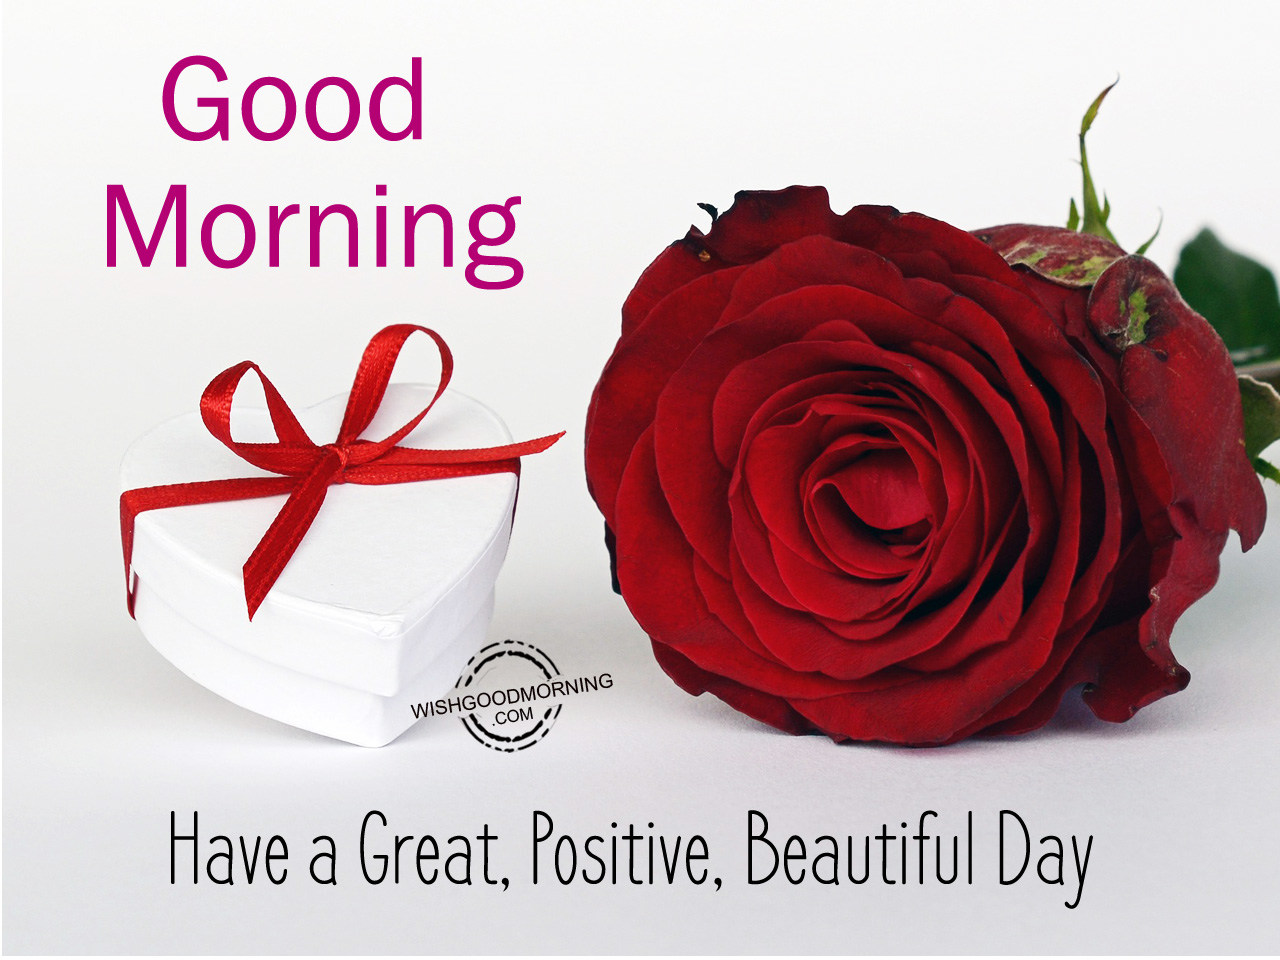 Good Morning Greetings And Wishes For A Great And Positive Day